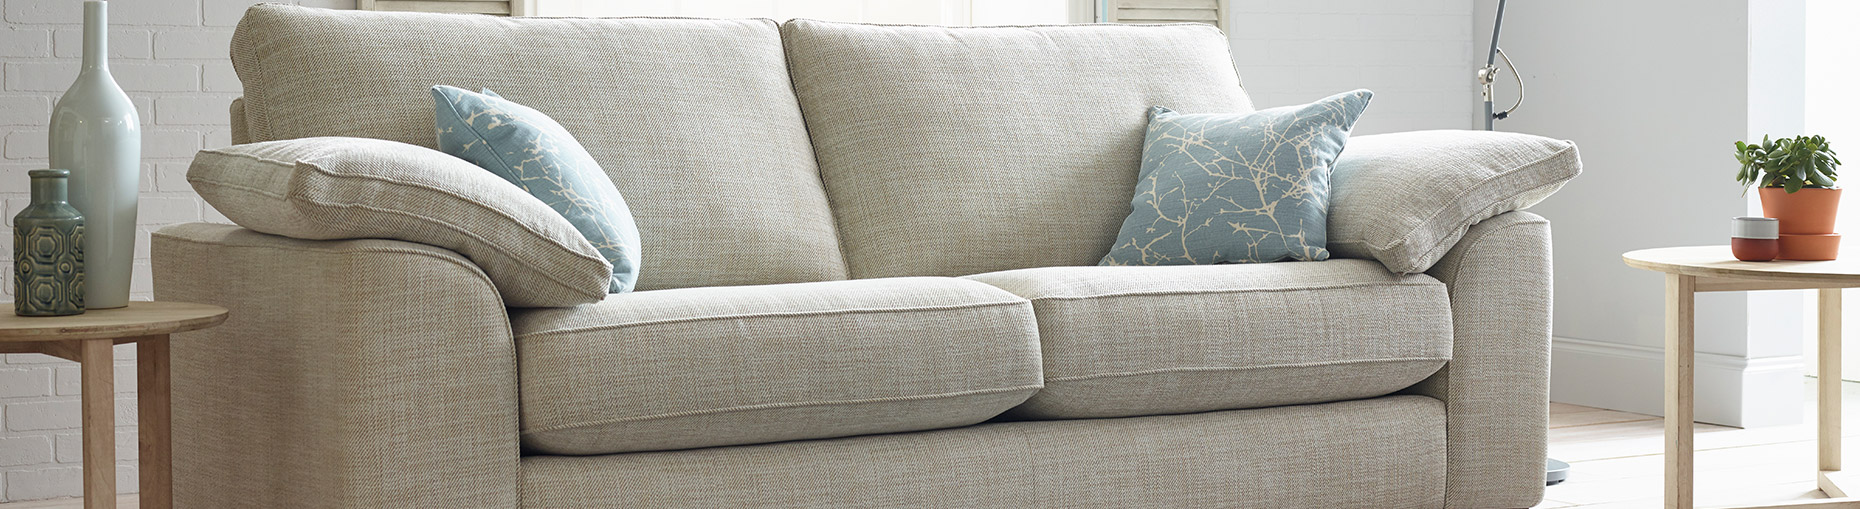 Blaise sofa collection at Forrest Furnishing